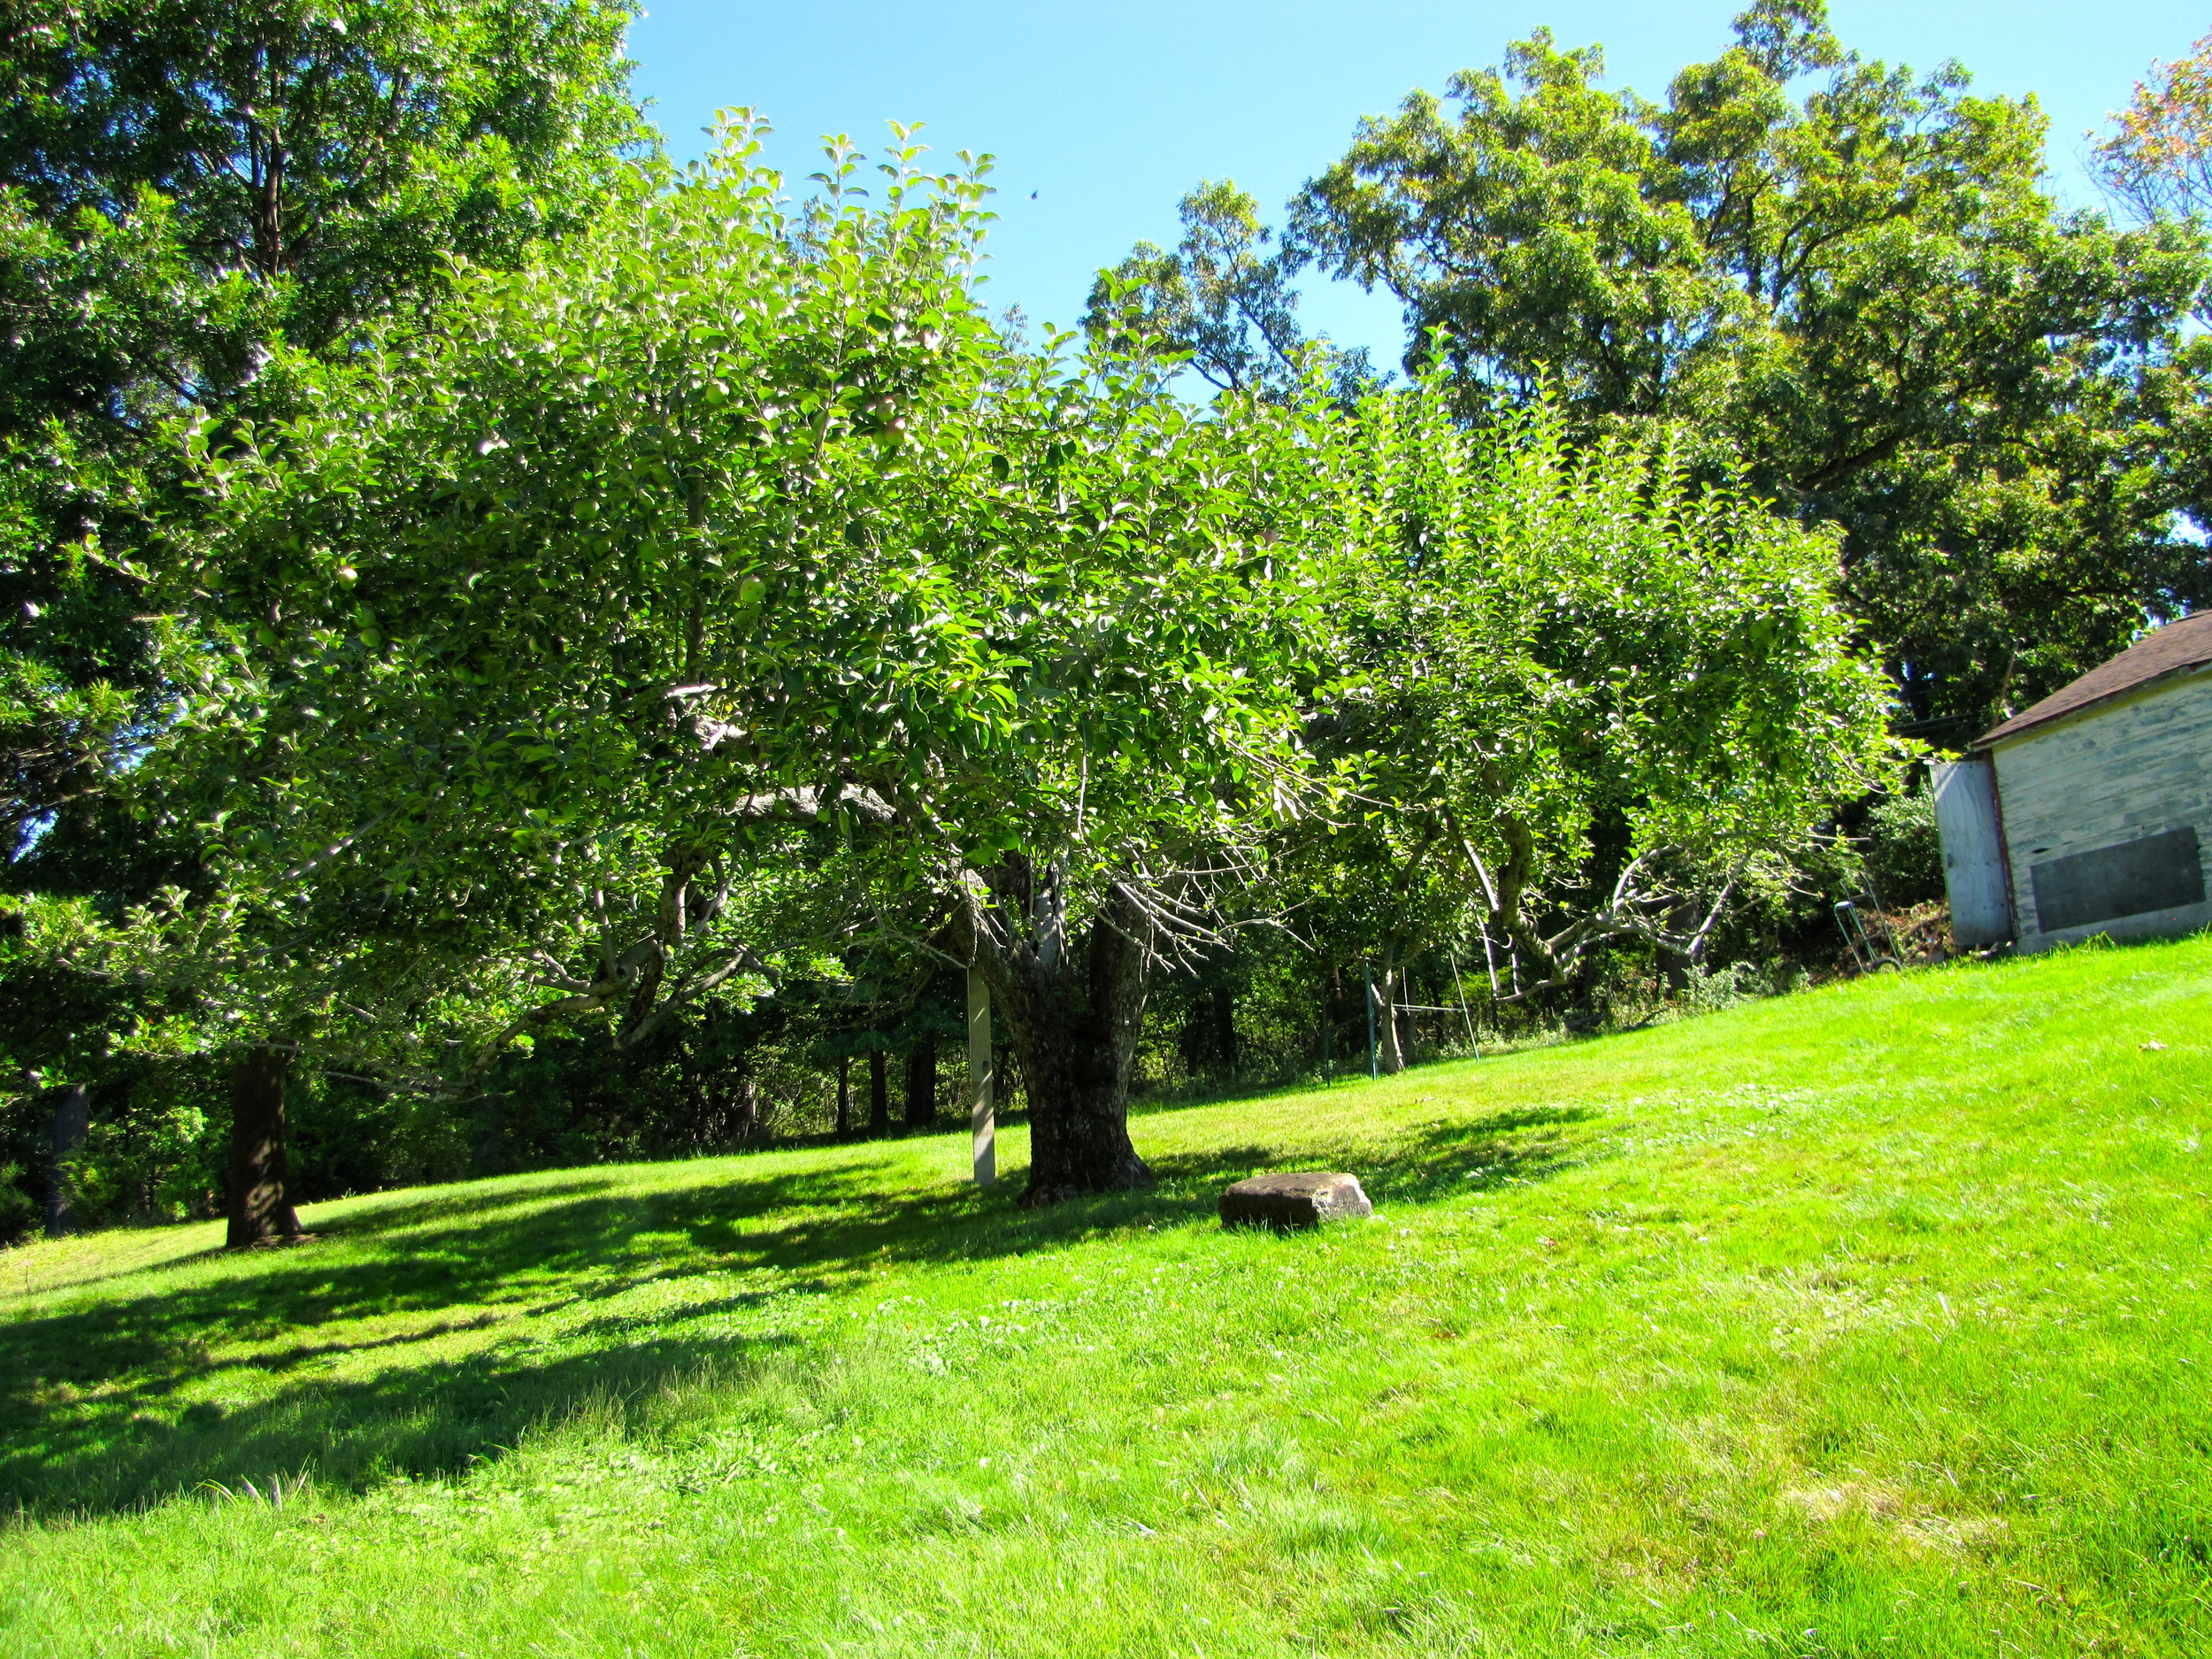 The one hundred year old apple tree